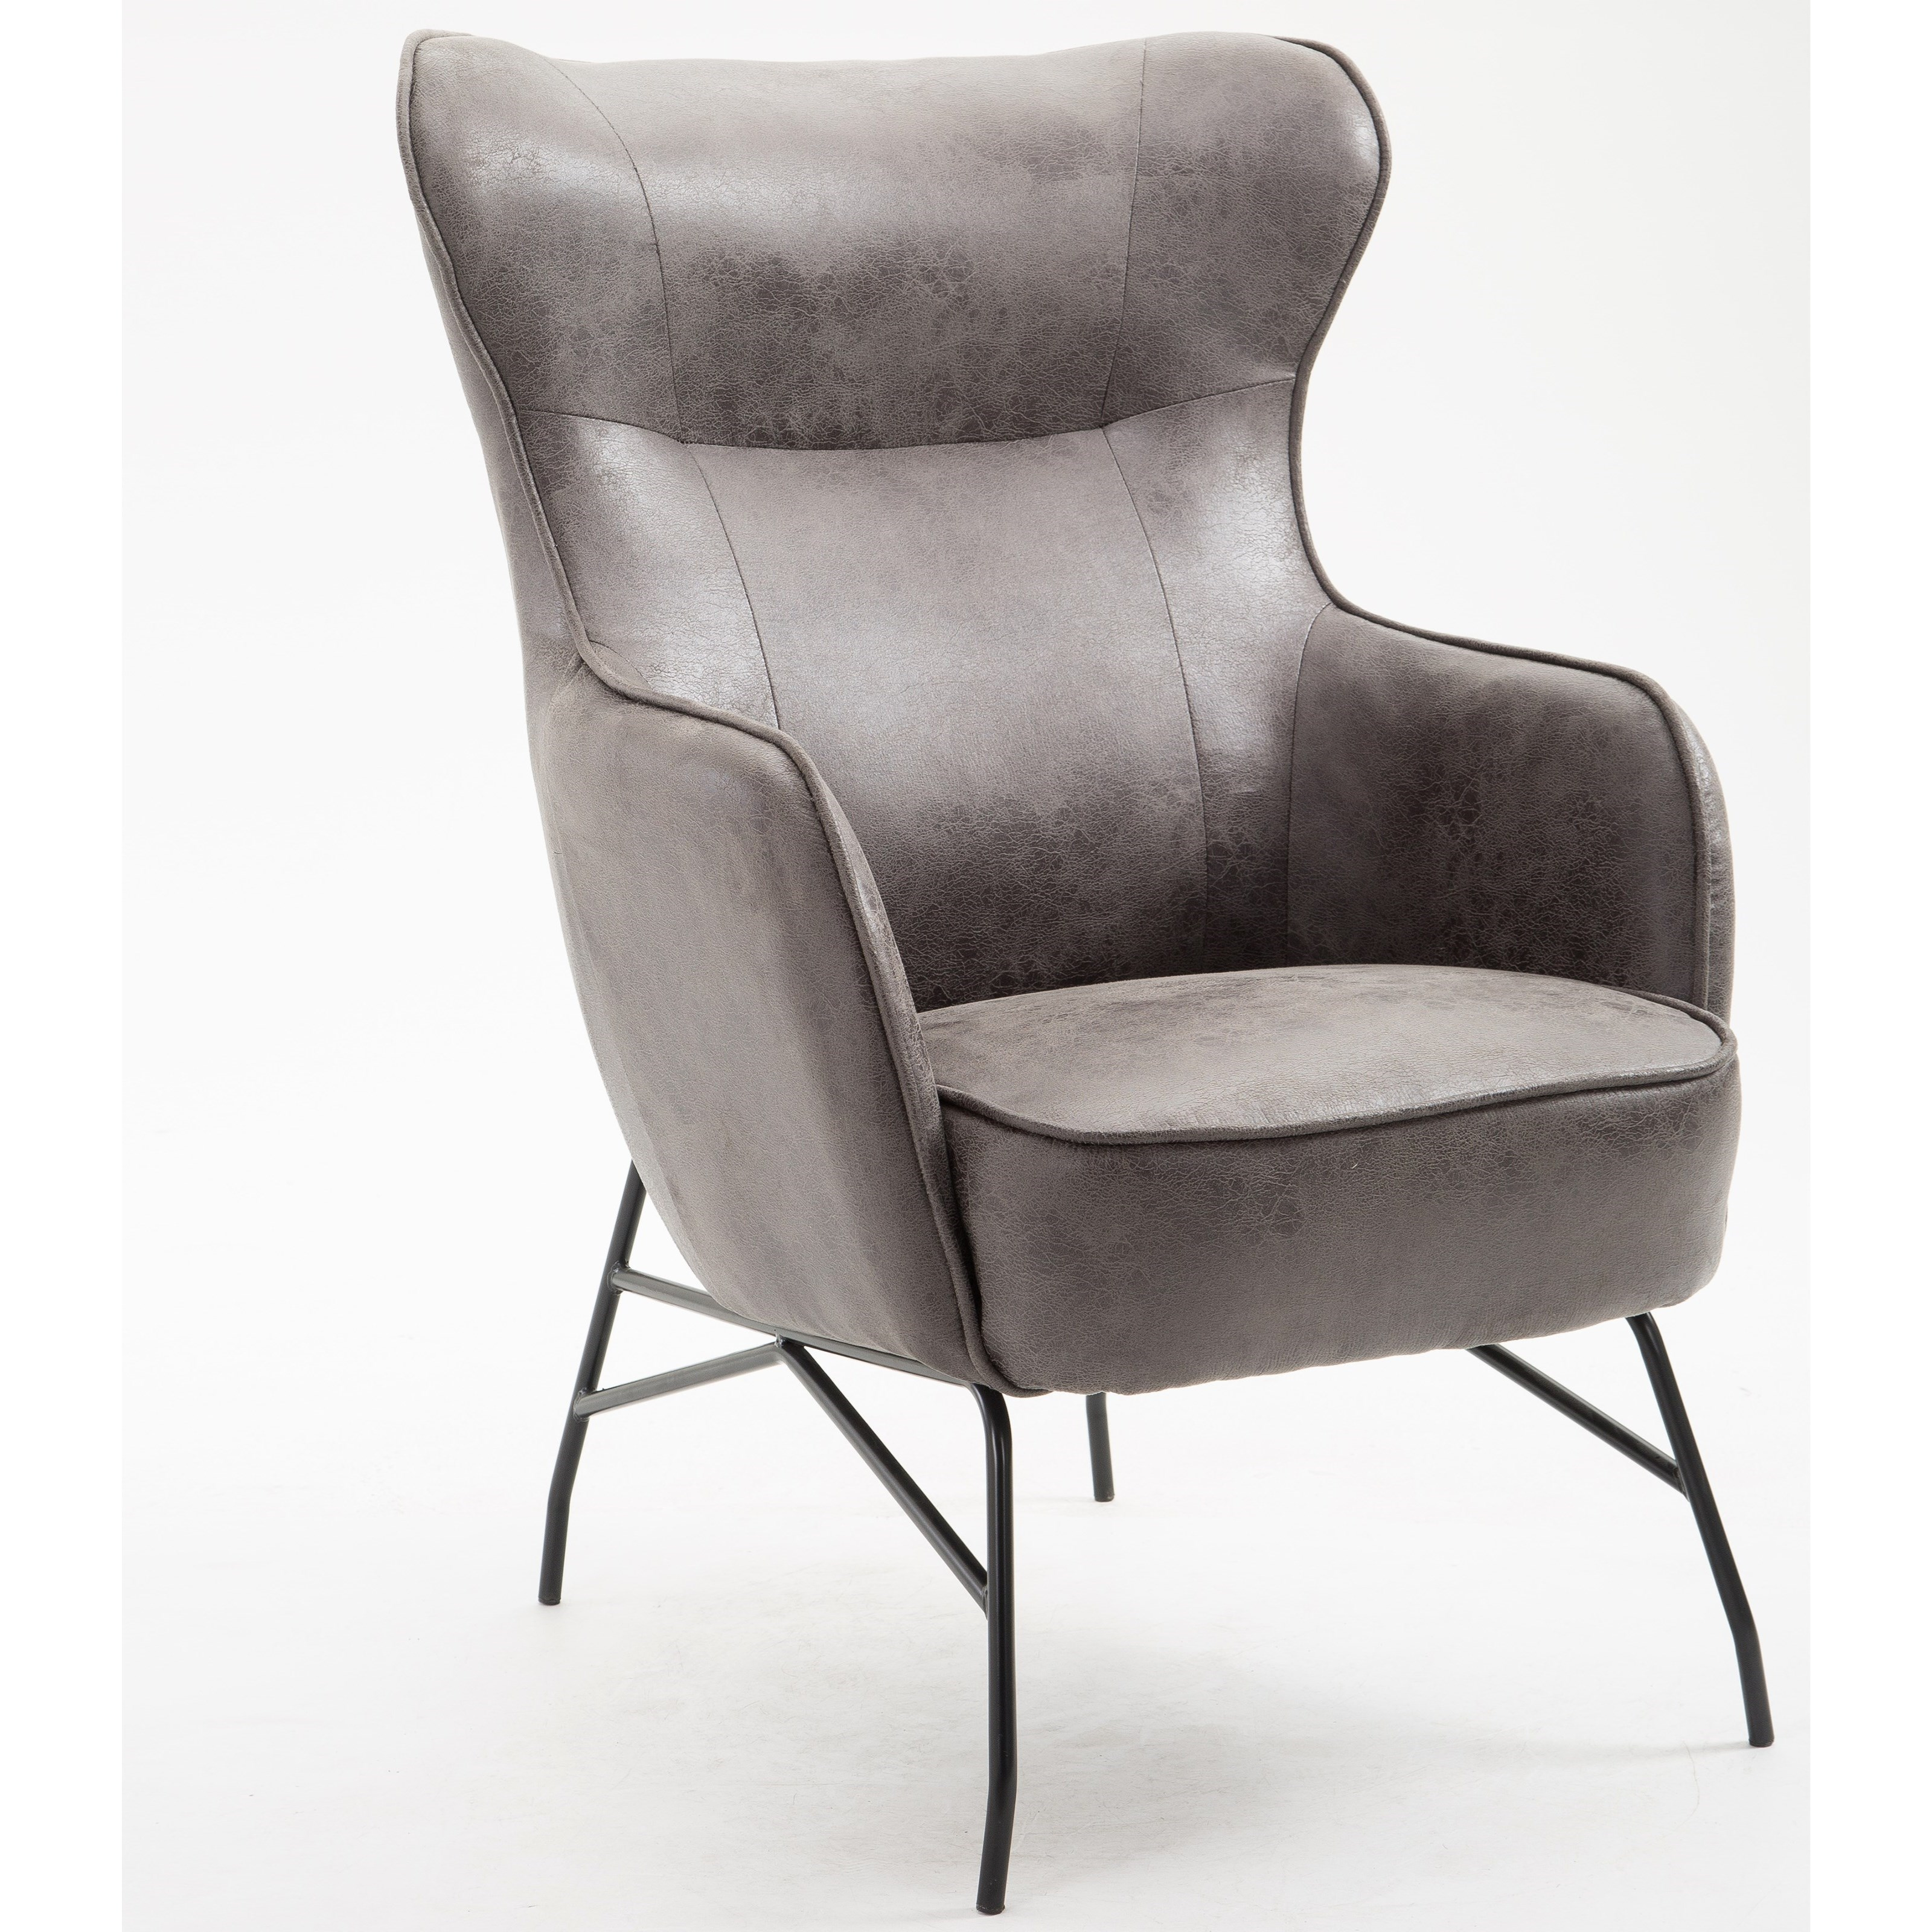 Franky Accent Chair by Emerald at Wilson's Furniture